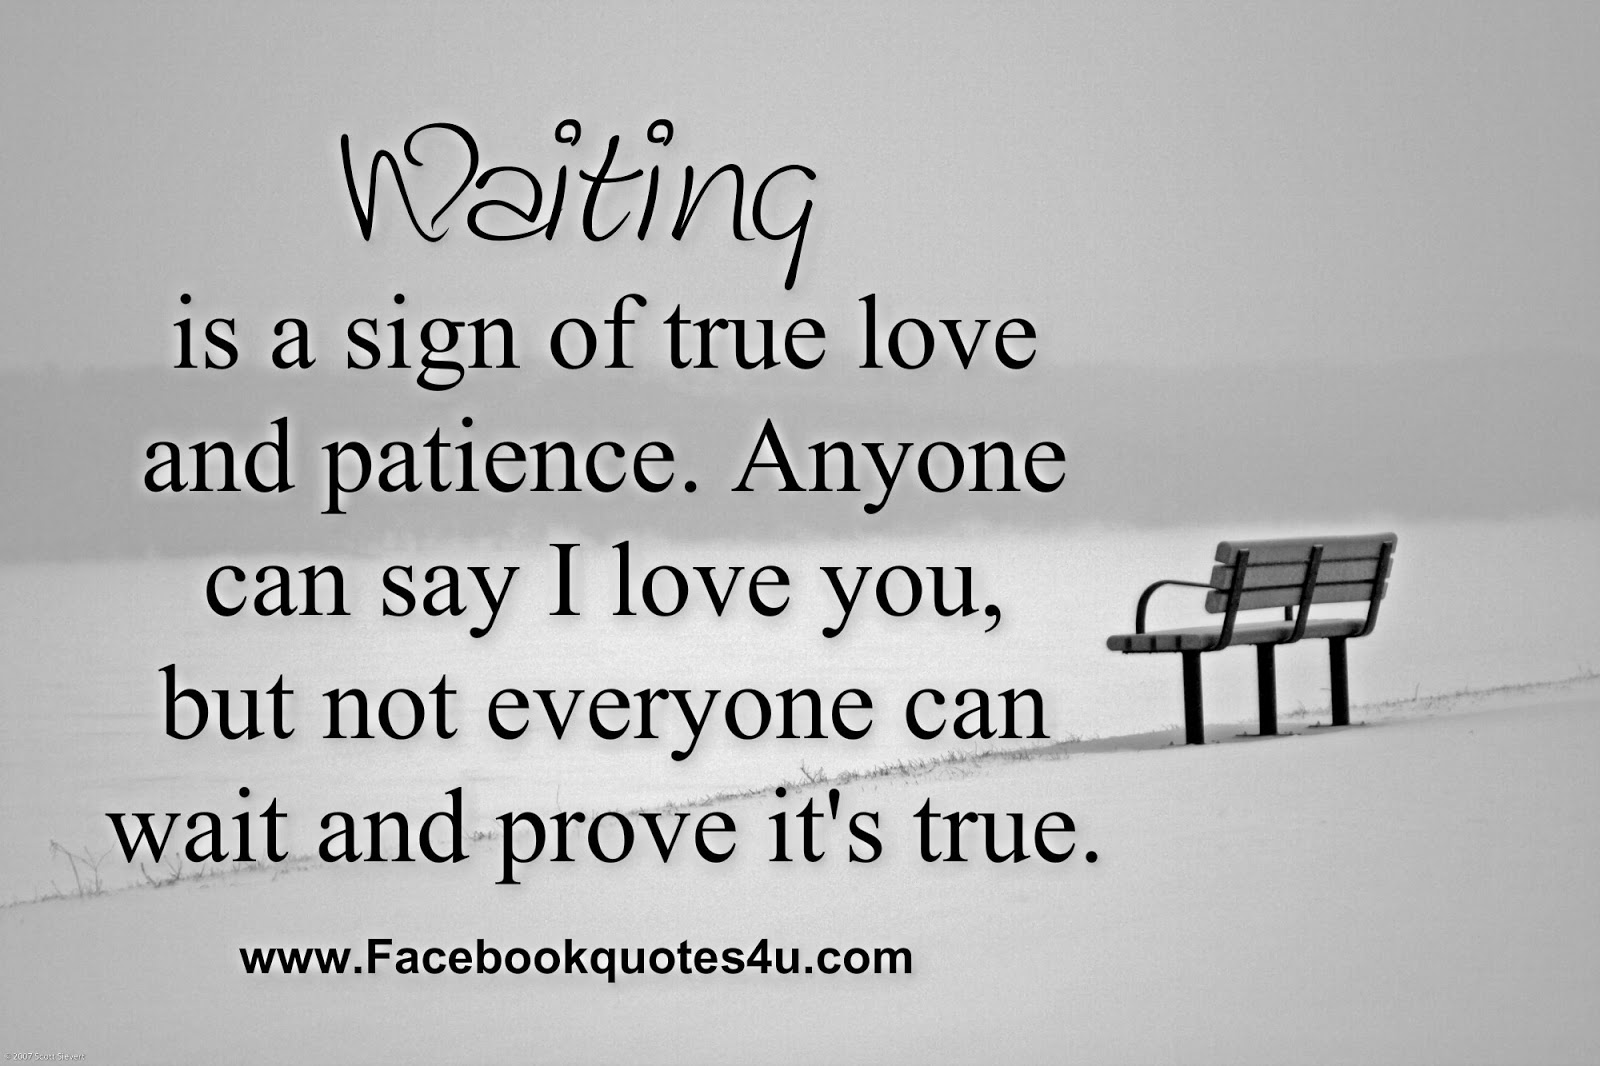 True Love Quotes And Sayings For Facebook True Love Quotes For F...